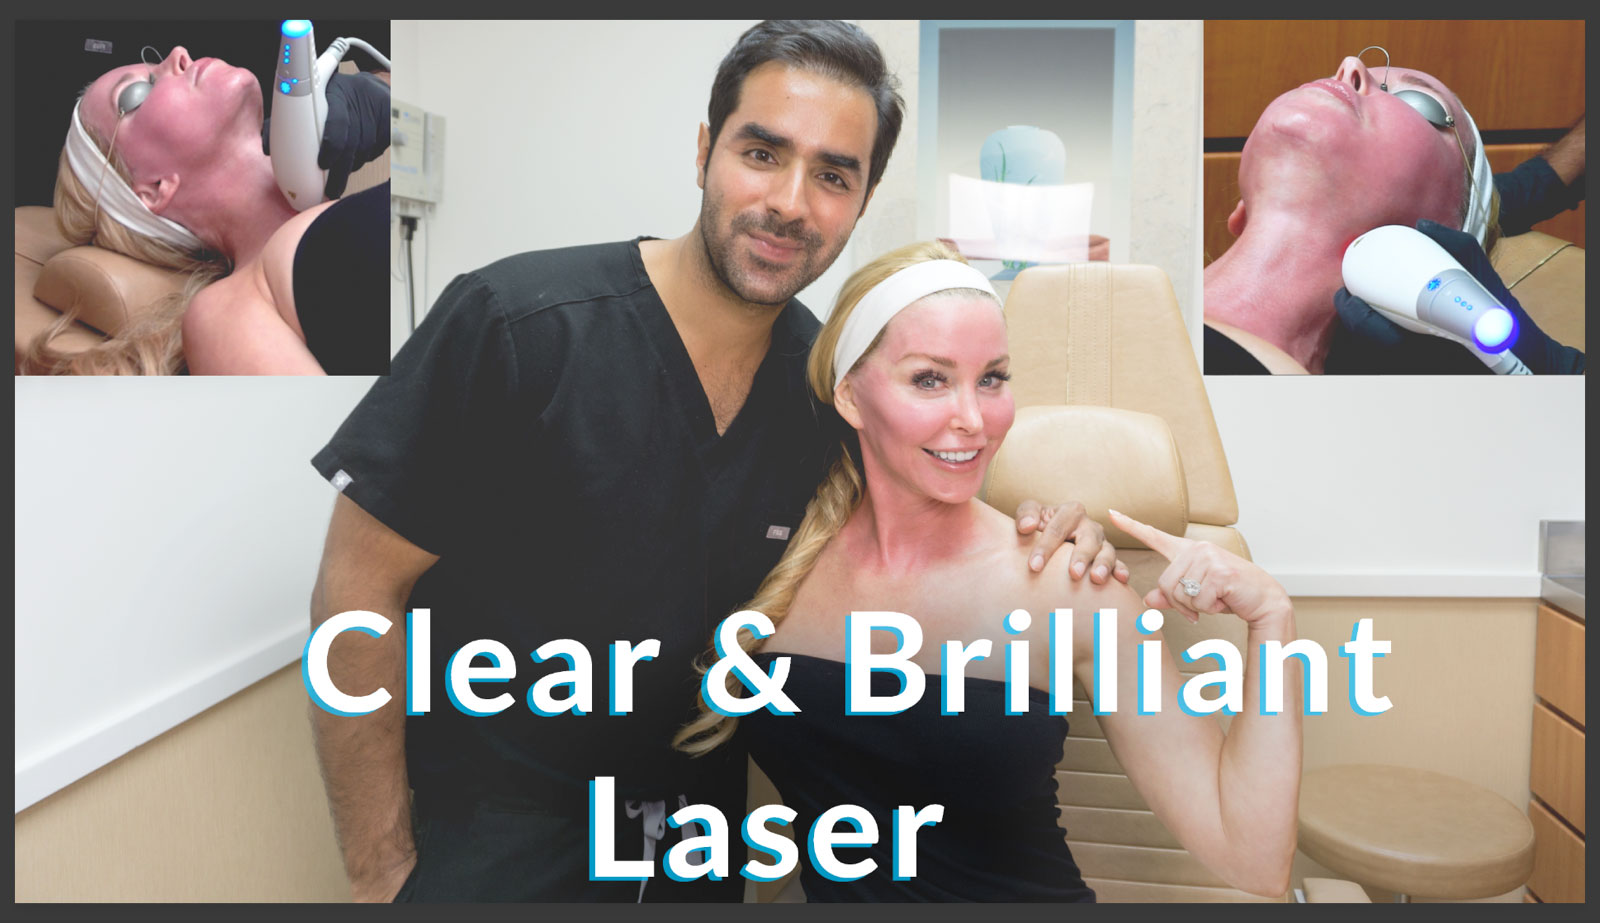 The Clear & Brilliant Laser with Dr. Bashey